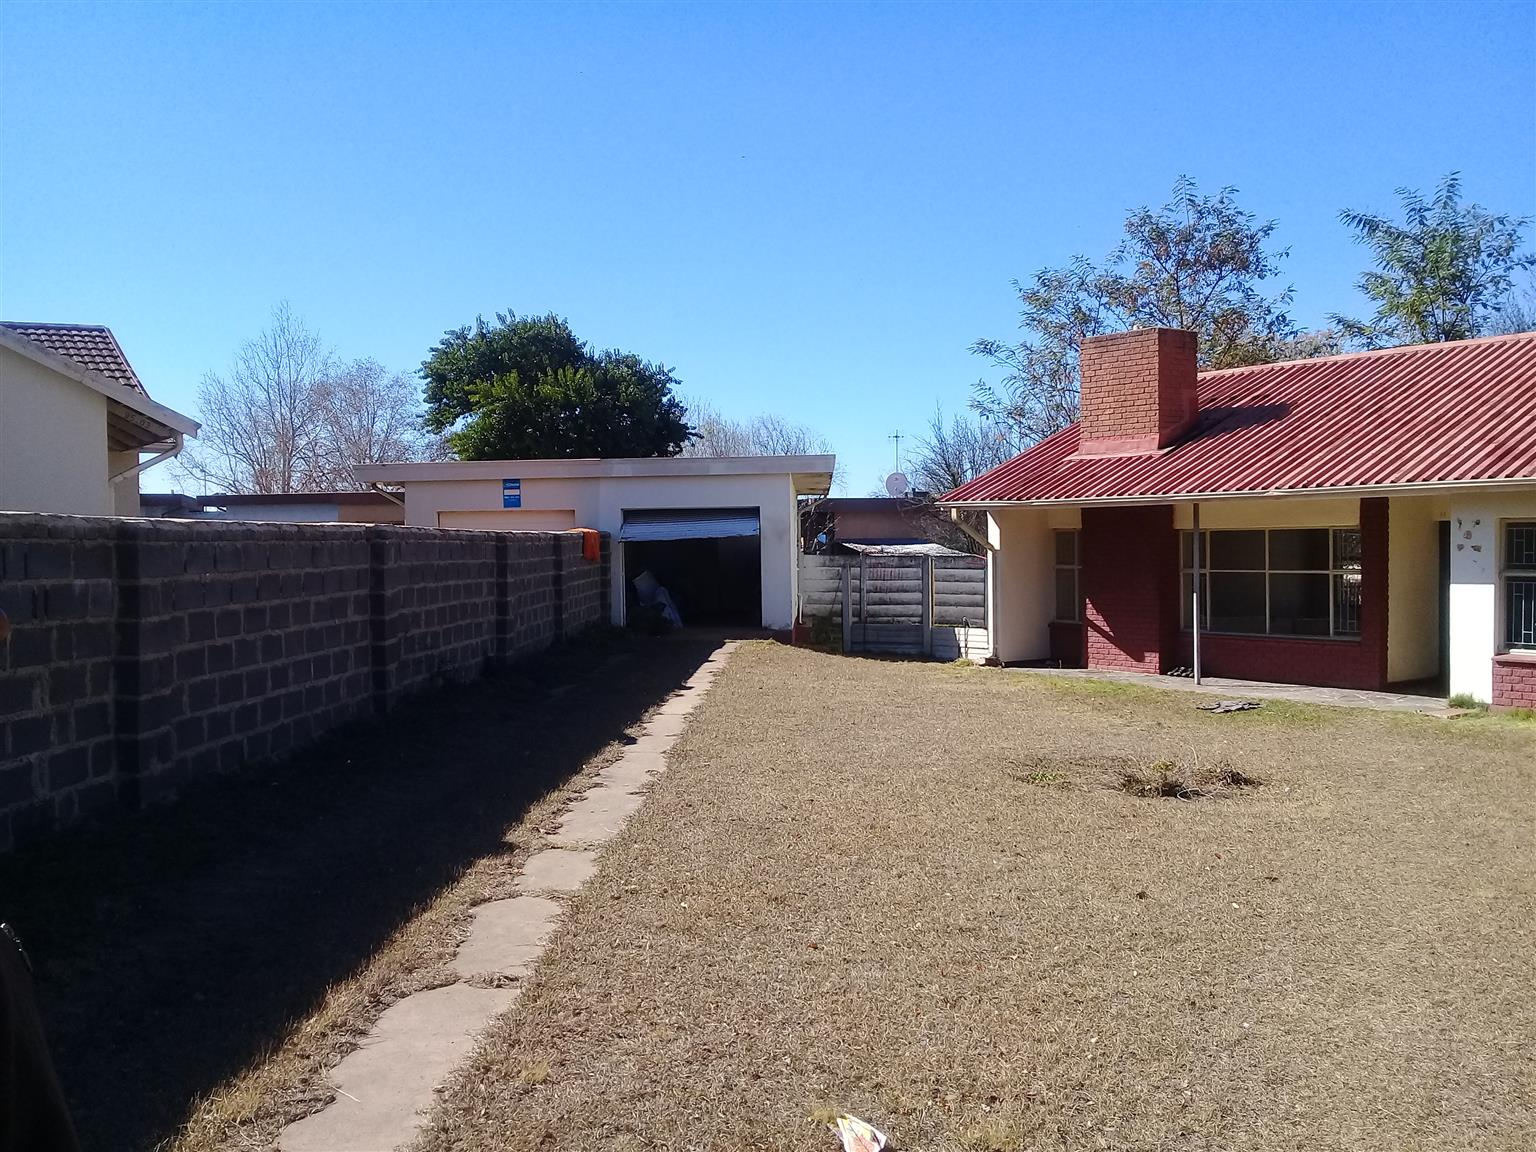 3 bedroom complete house to rent in Newcastle